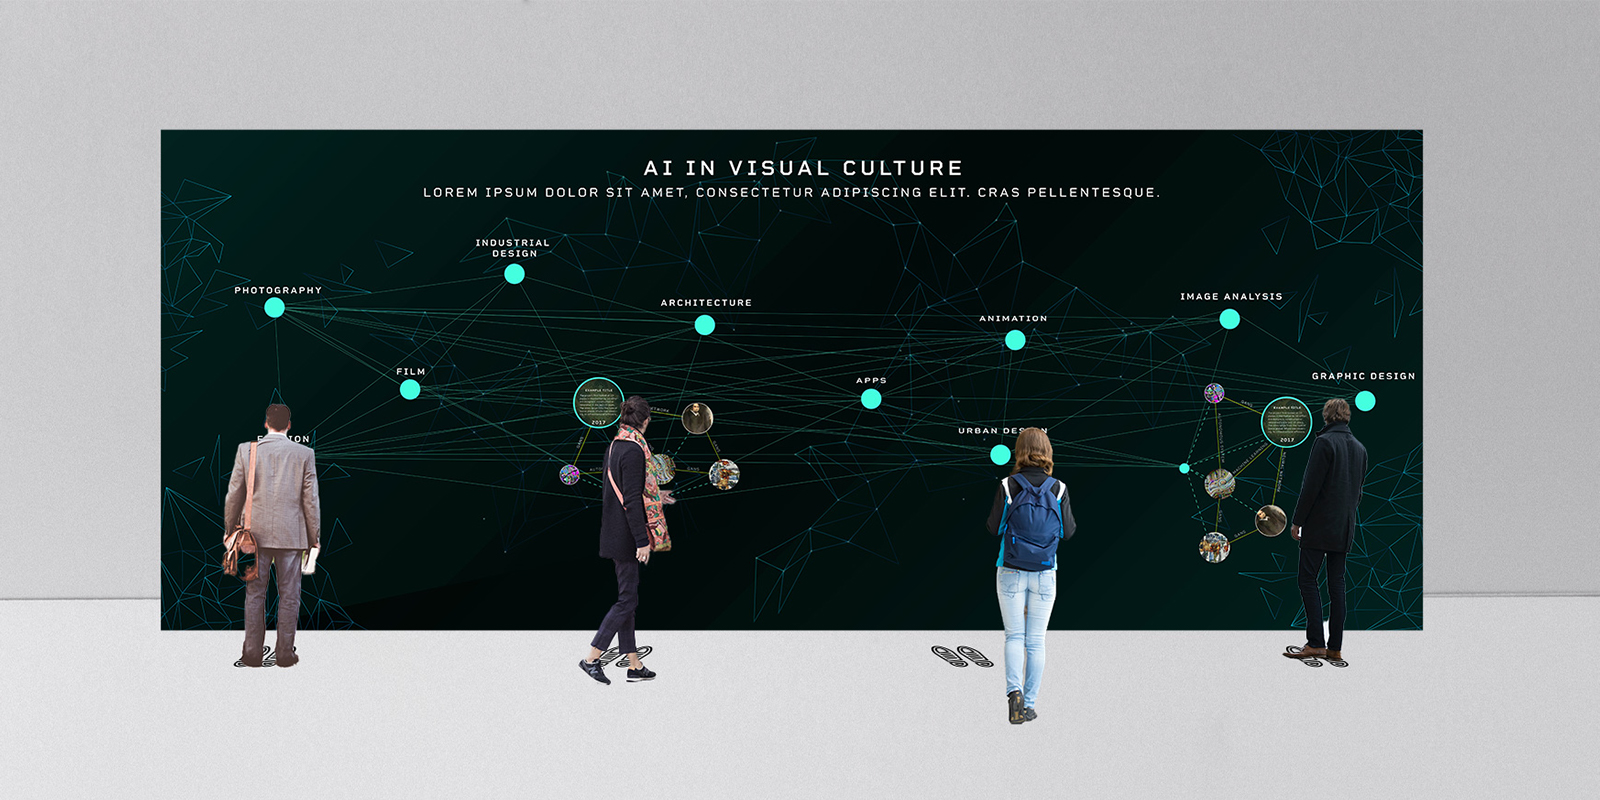 installation mock-up. large scale wall with a network and 4 people standing in front.